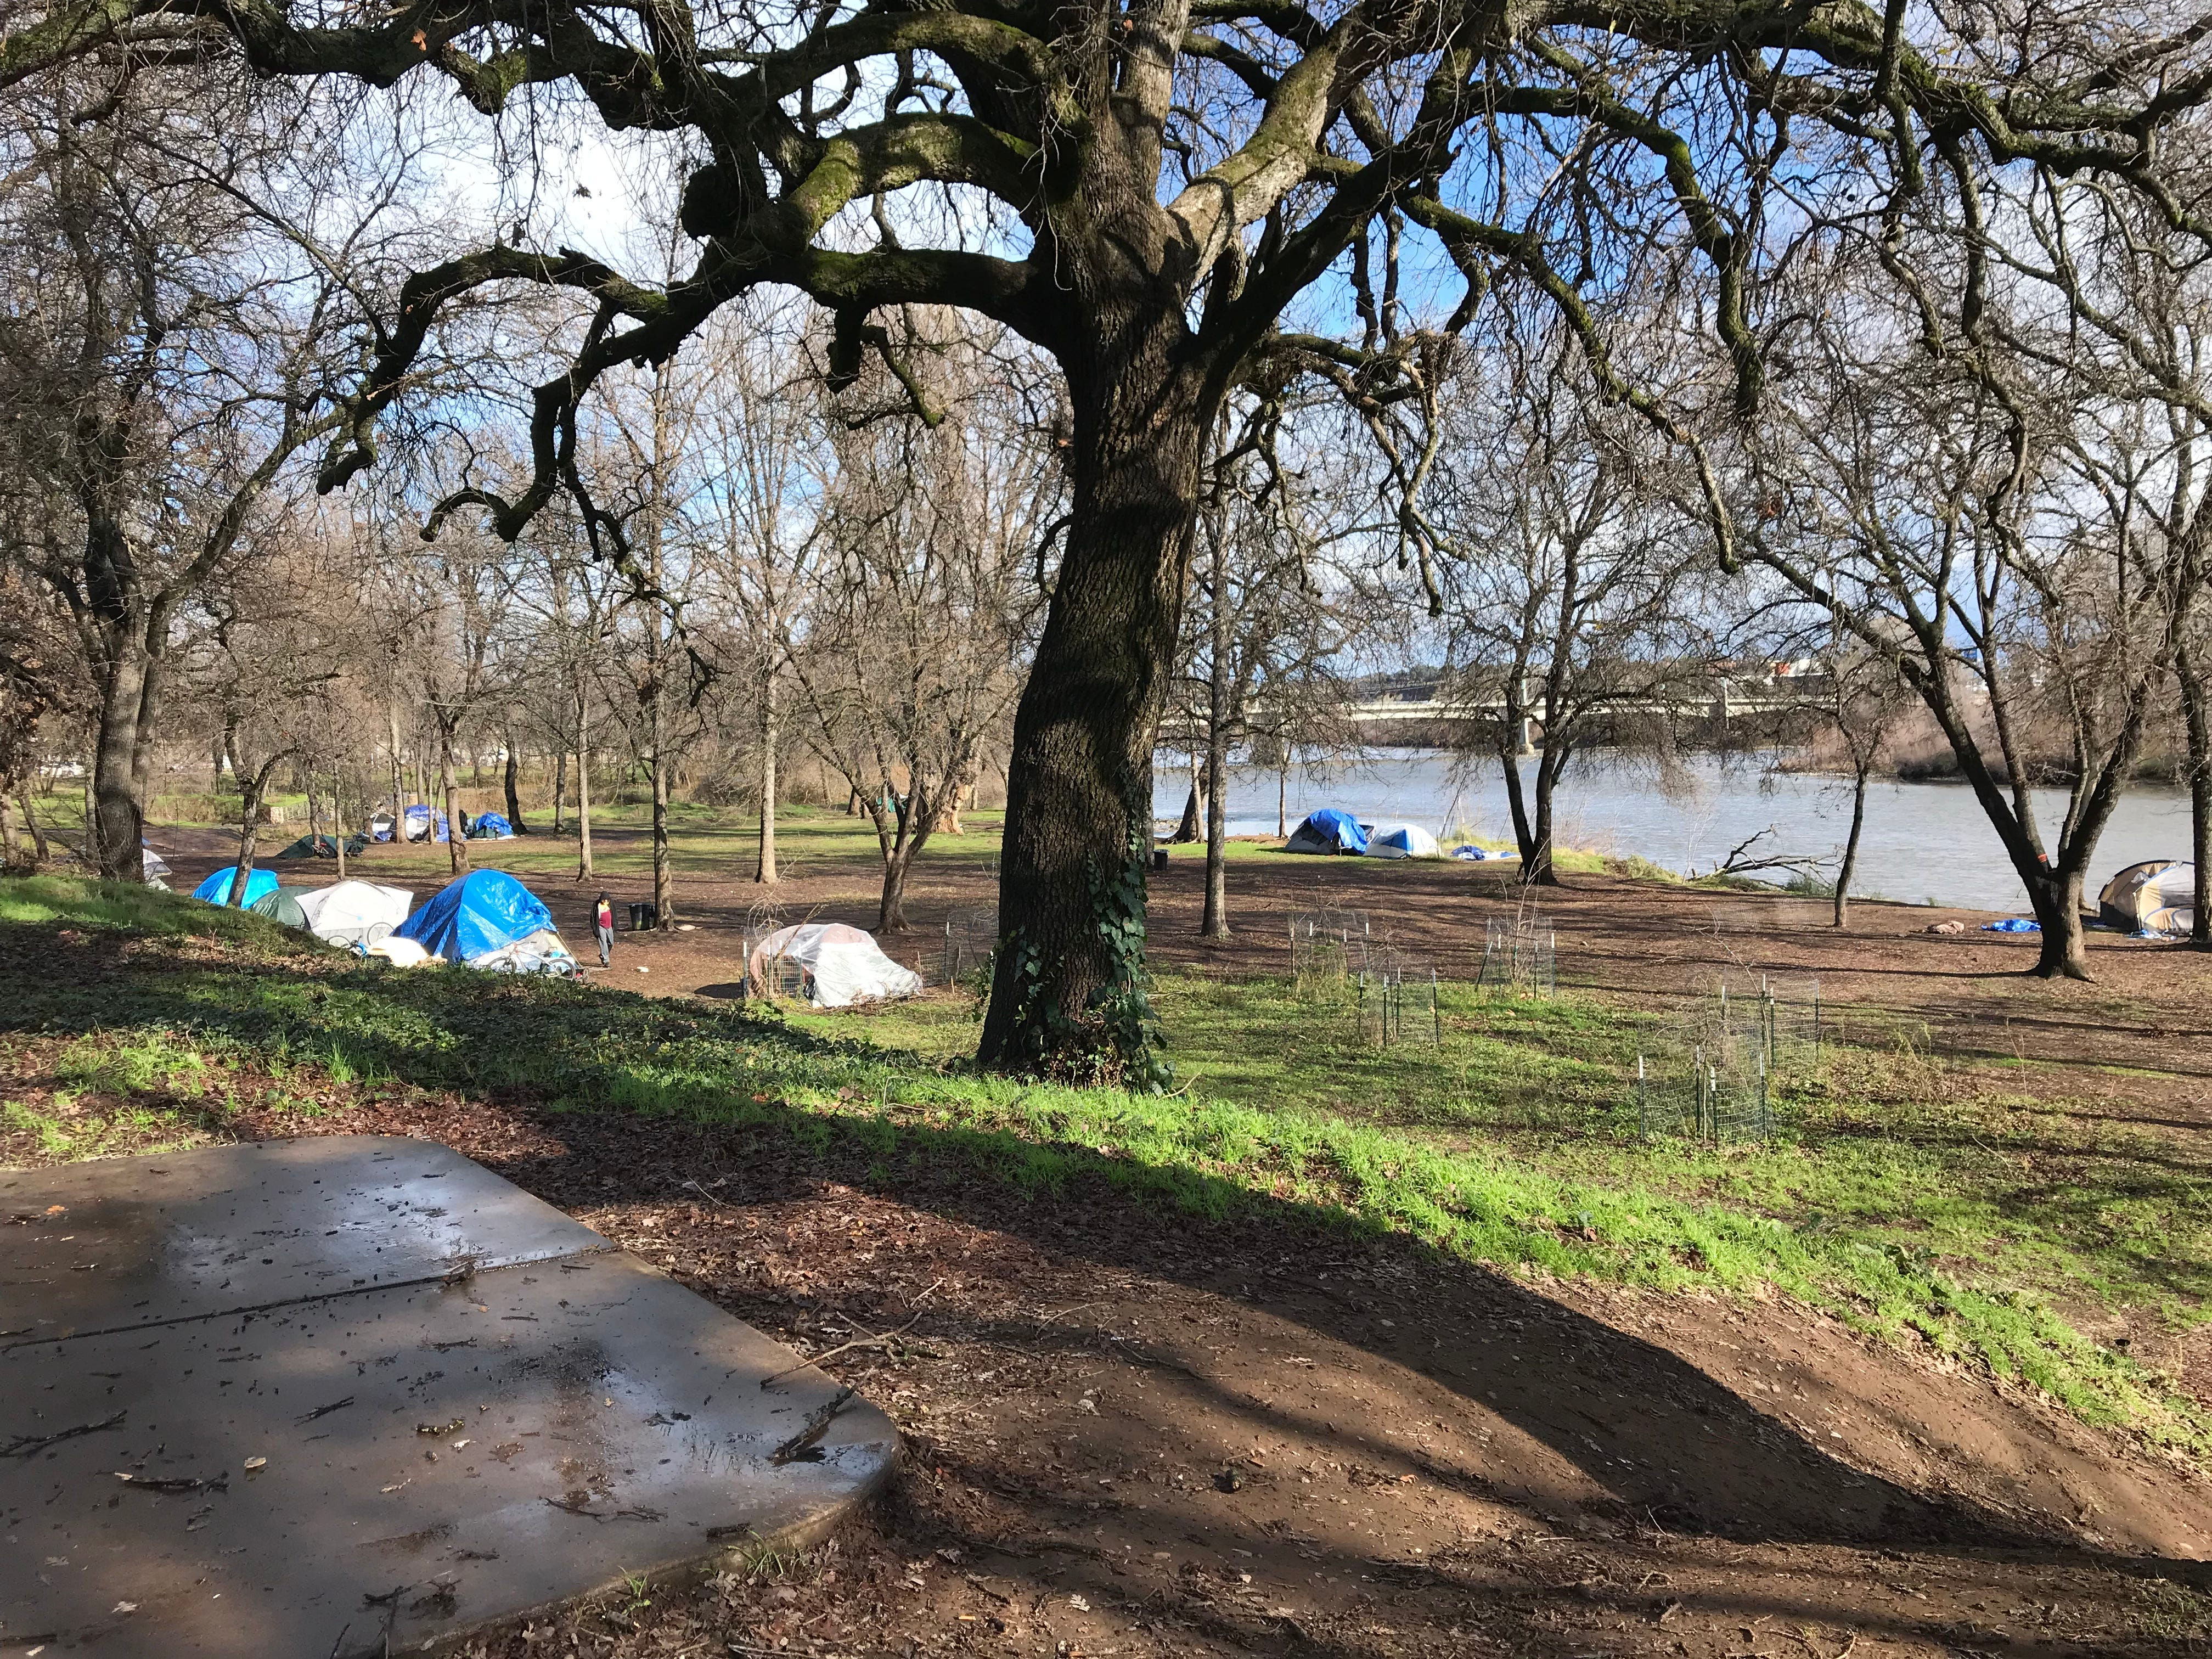 People are living in tents along the Sacramento River near downtown Redding. January 17, 2019